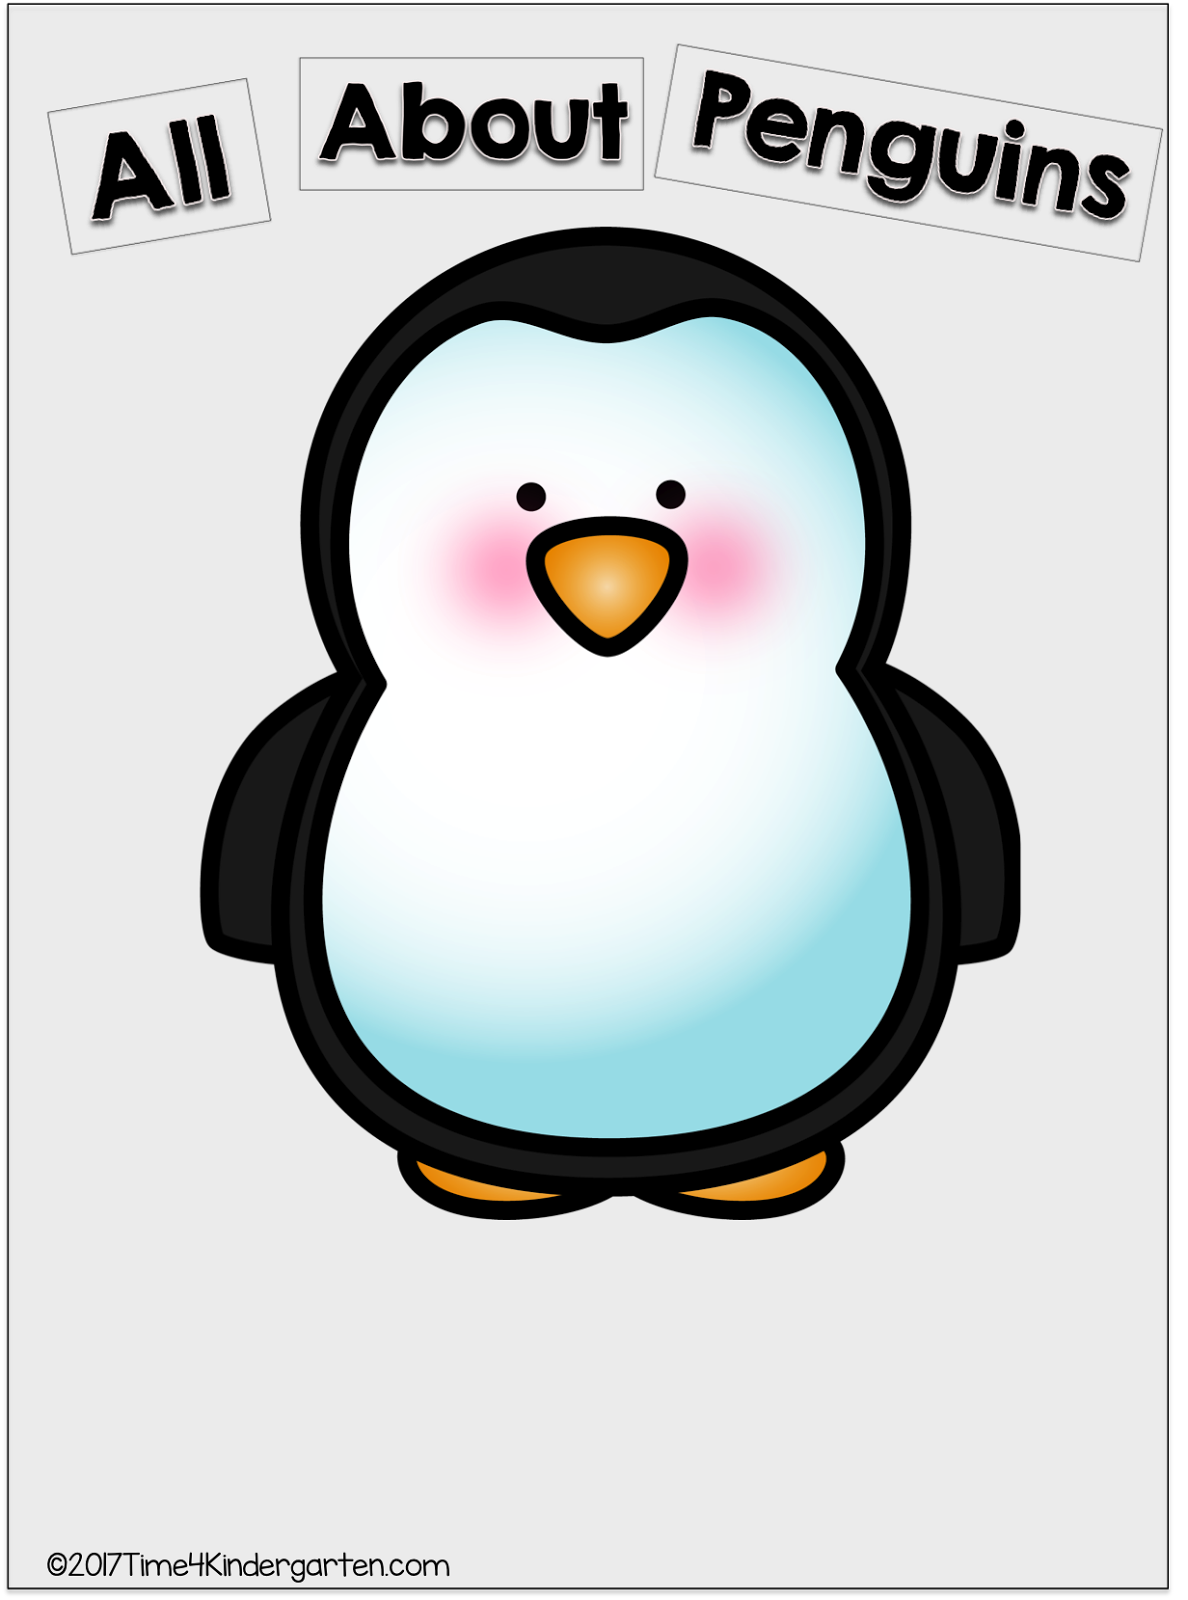 Time kindergarten all about. Clipart penquin 3 animal